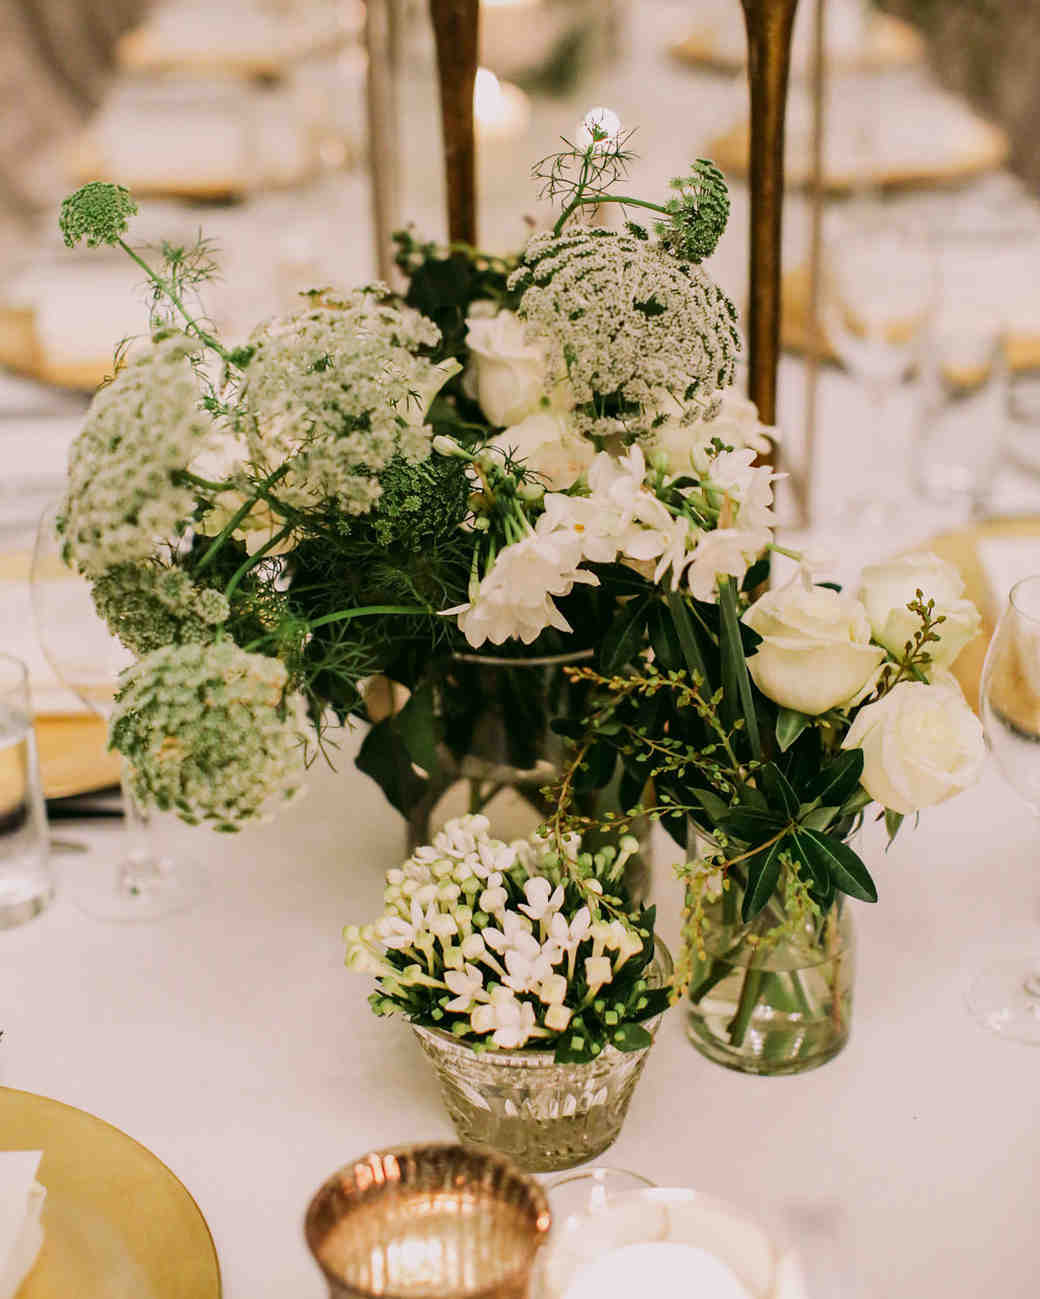 Wedding Centerpieces: Affordable Wedding Centerpieces That Still Look Elevated